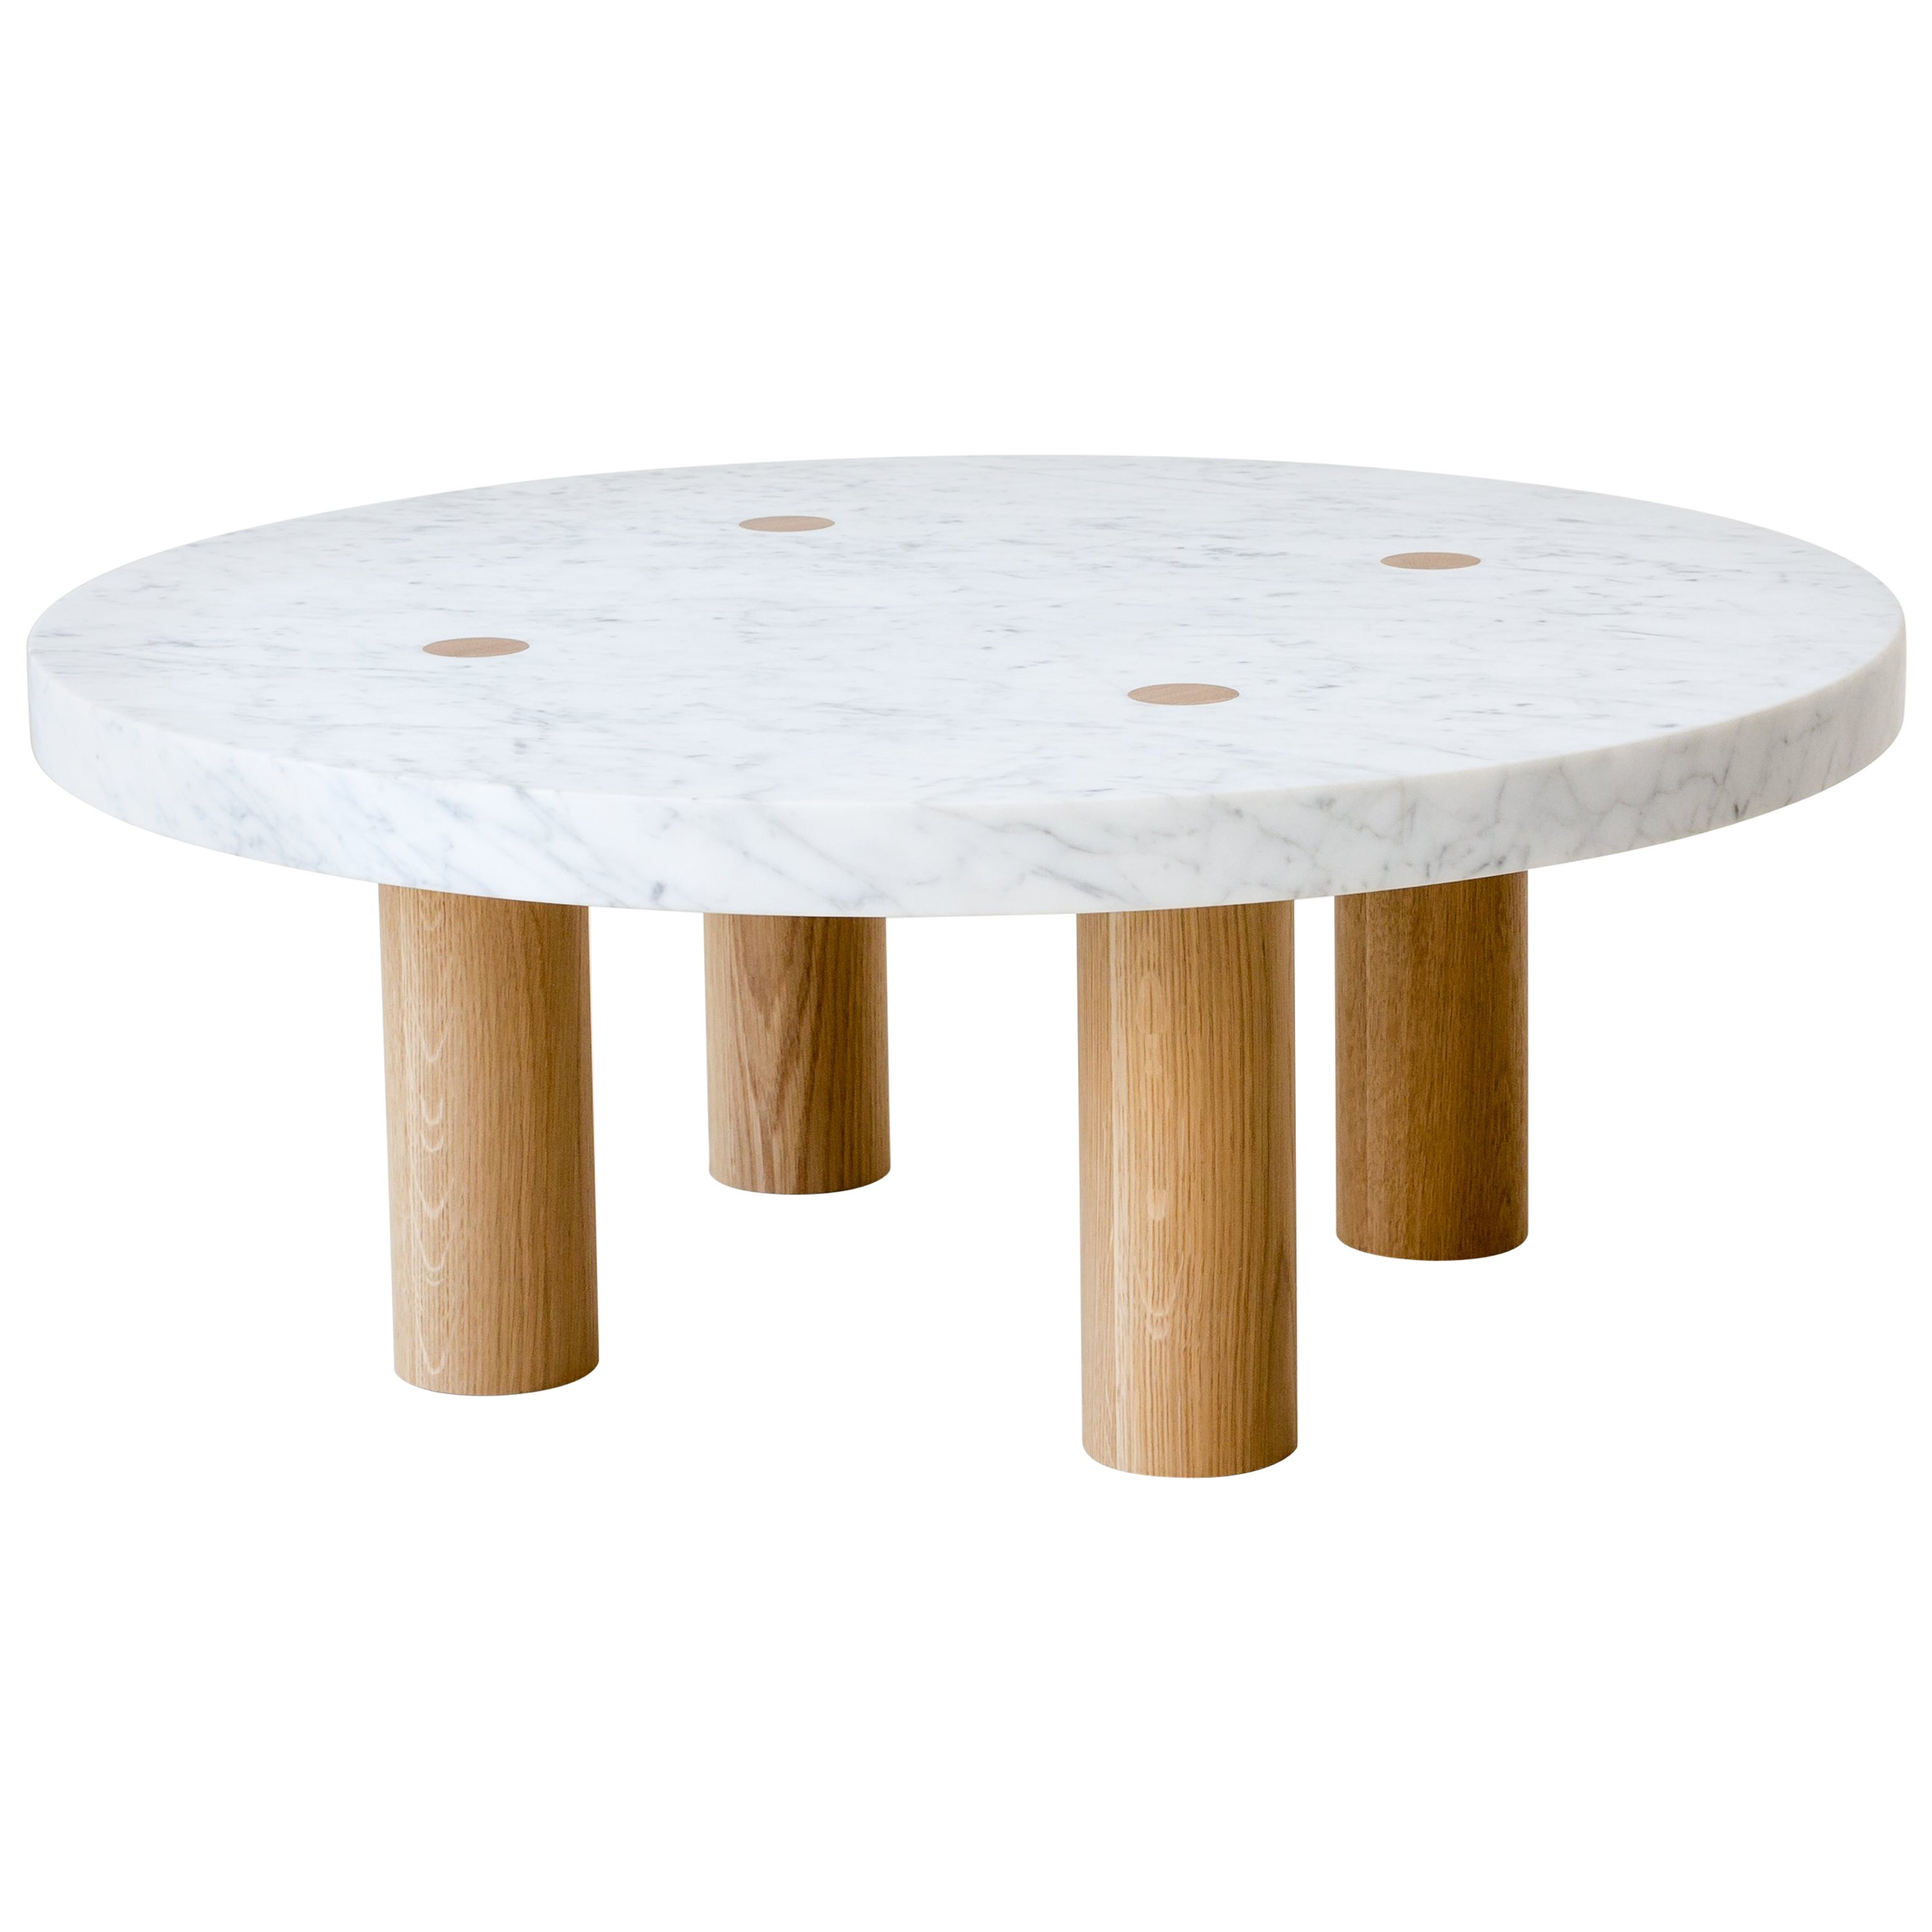 Stone Column Coffee Table in Carrara Marble and White Oak Wood by Fort Standard